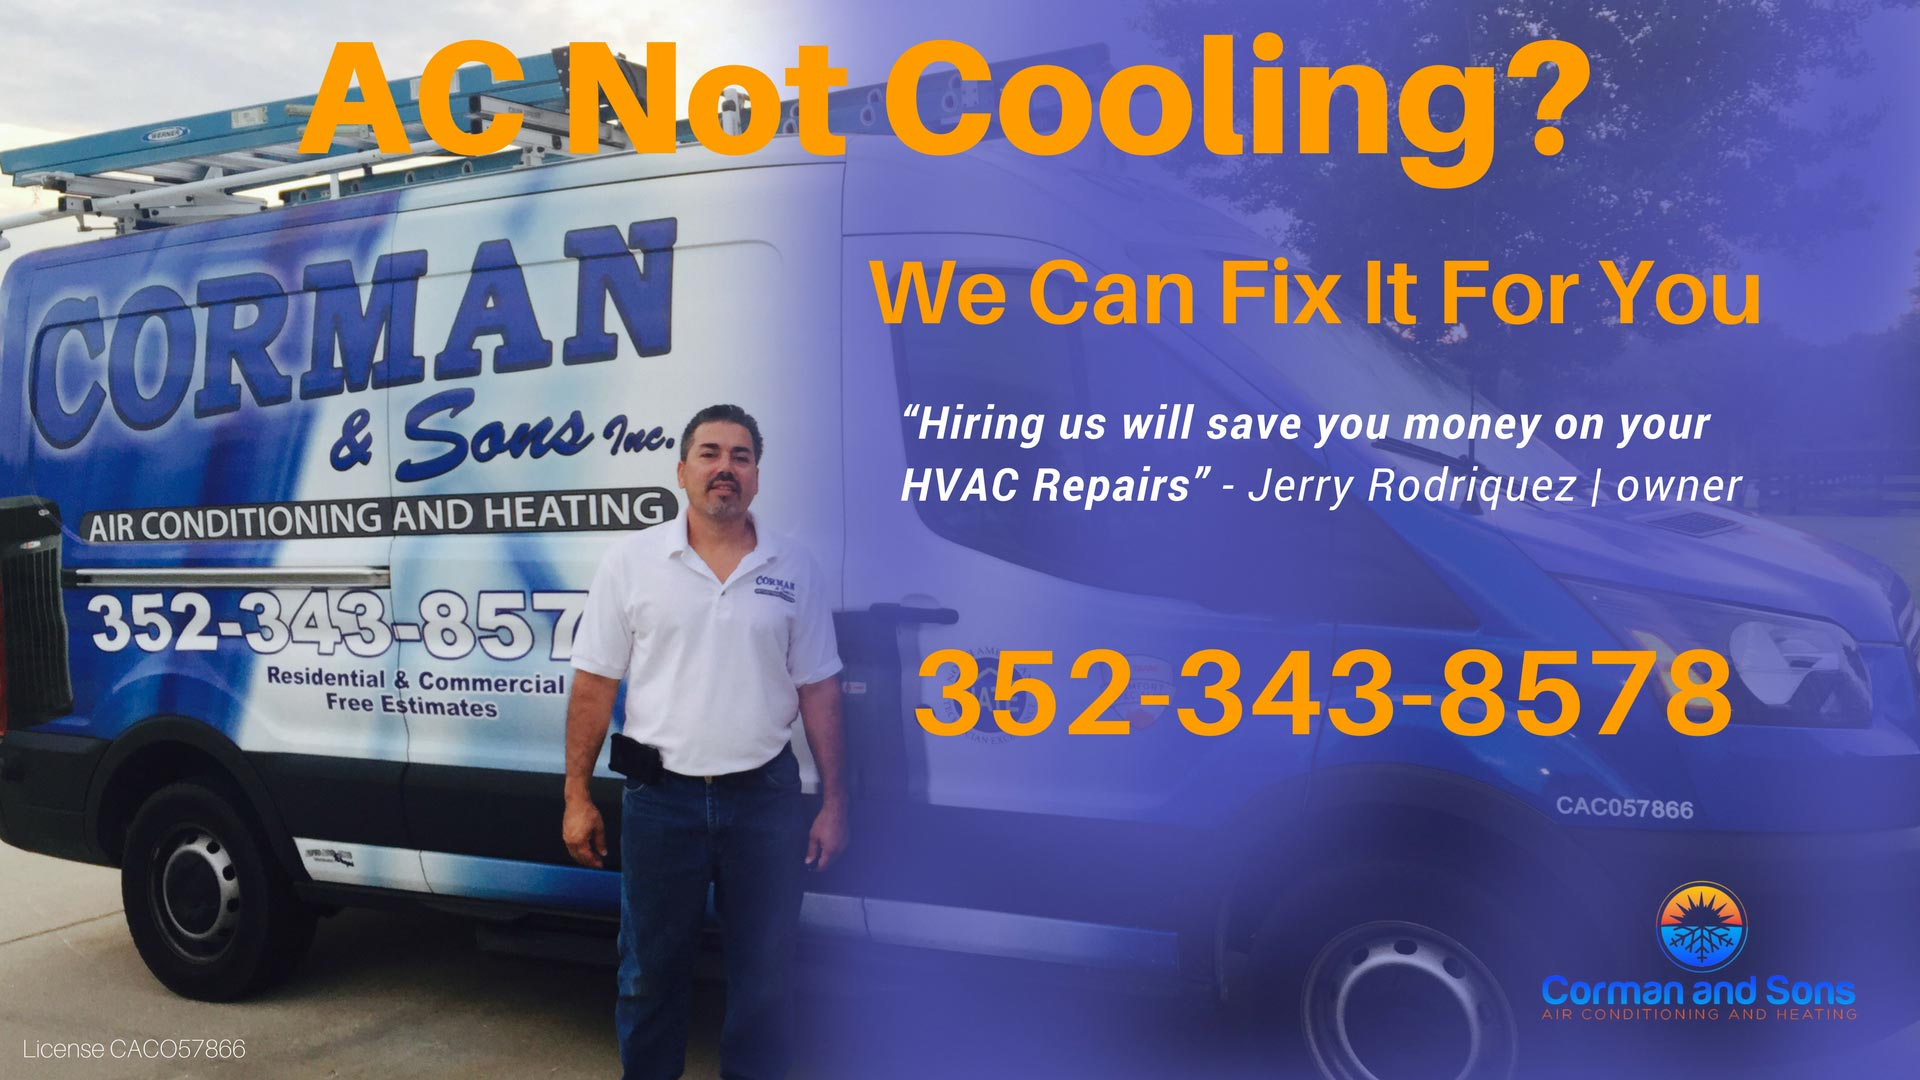 AC-Not-Cooling-We-Can-Fix-it-For-You